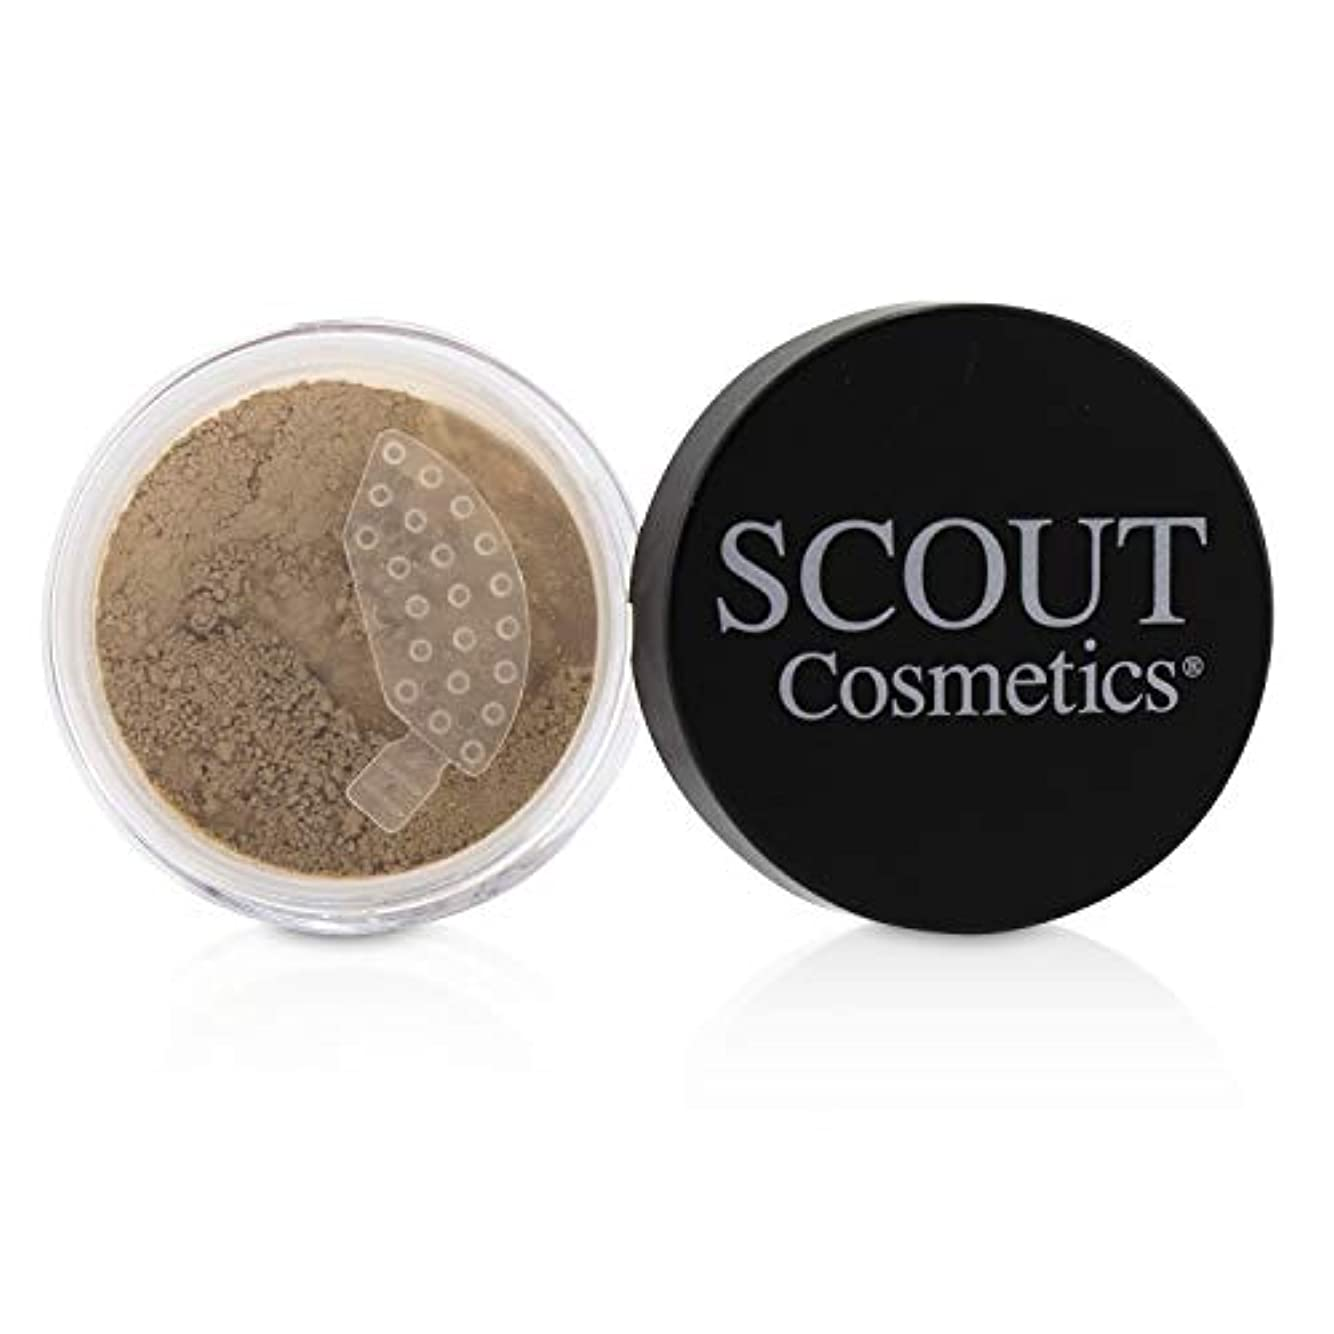 SCOUT Cosmetics Mineral Powder Foundation SPF 20 - # Shell 8g/0.28oz並行輸入品